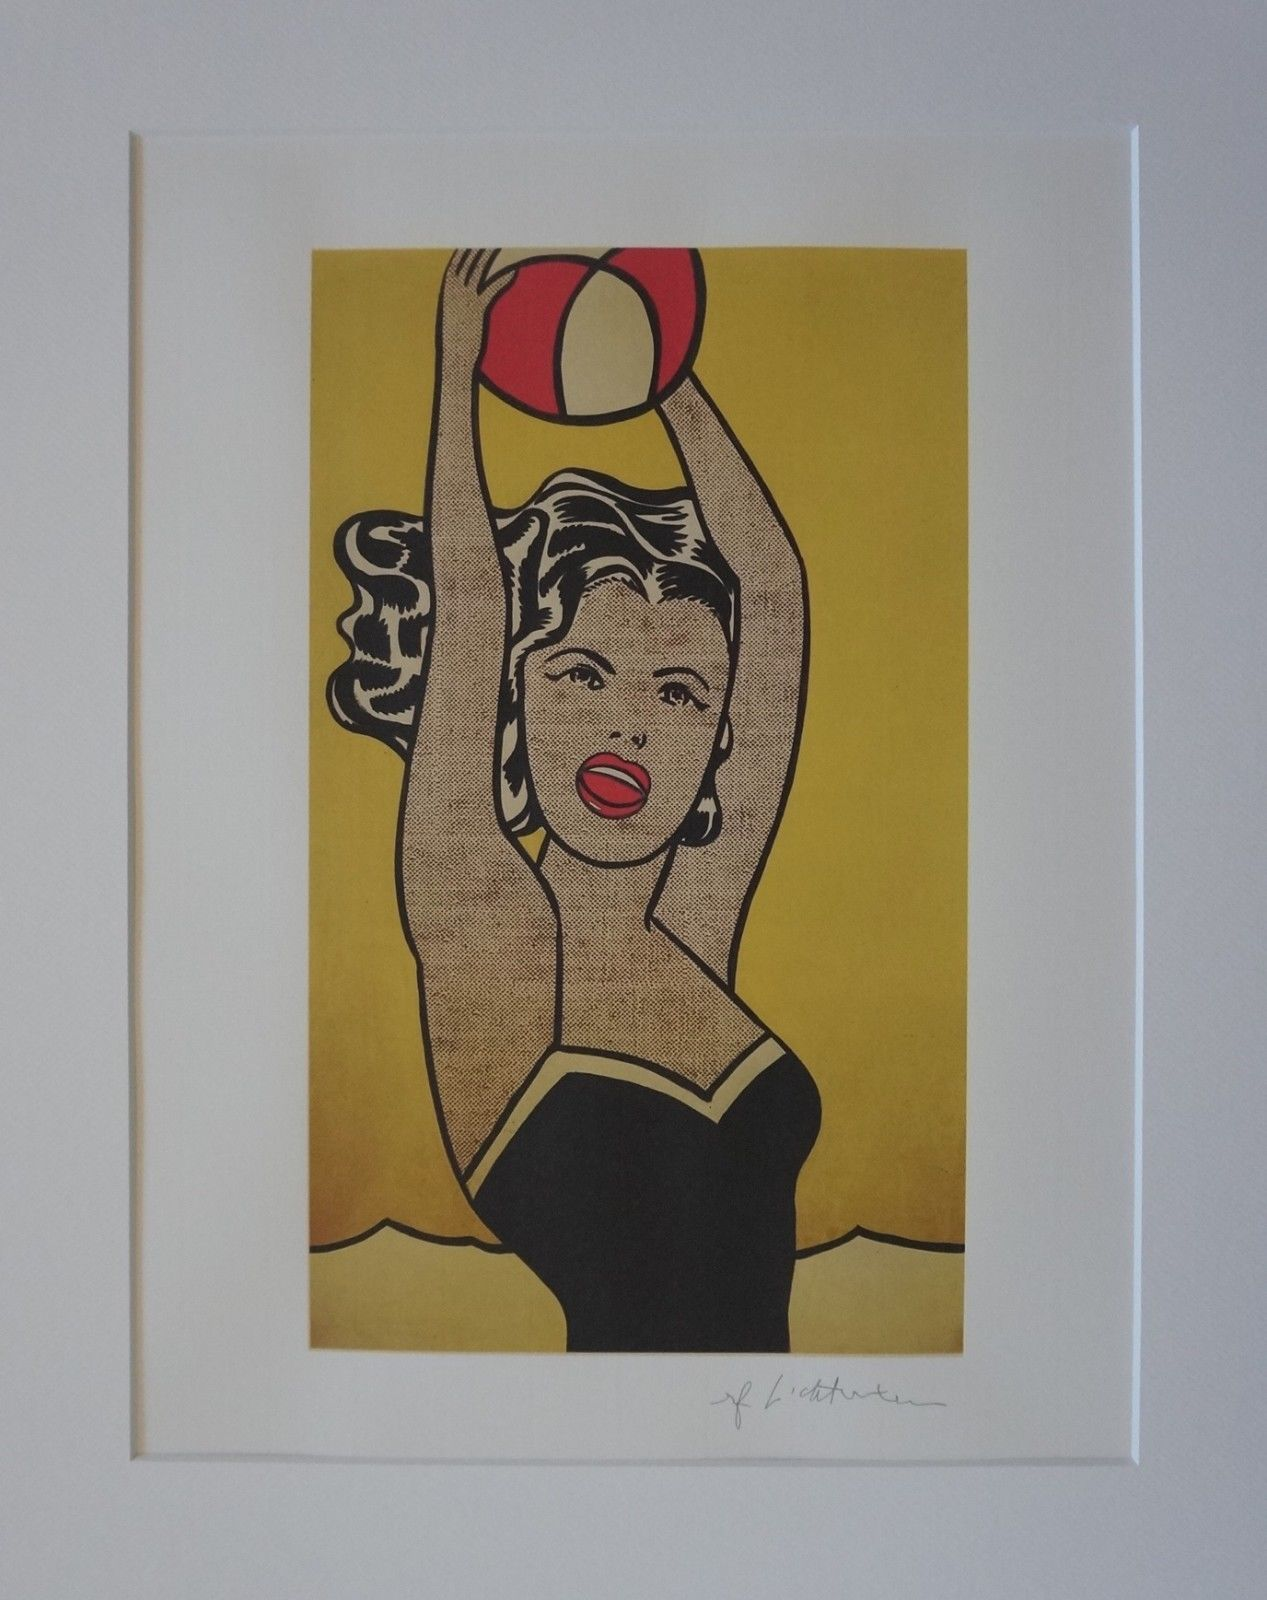 ROY LICHTENSTEIN - Girl with ball (1981), 2005 (lithographie signée dans la plaque)